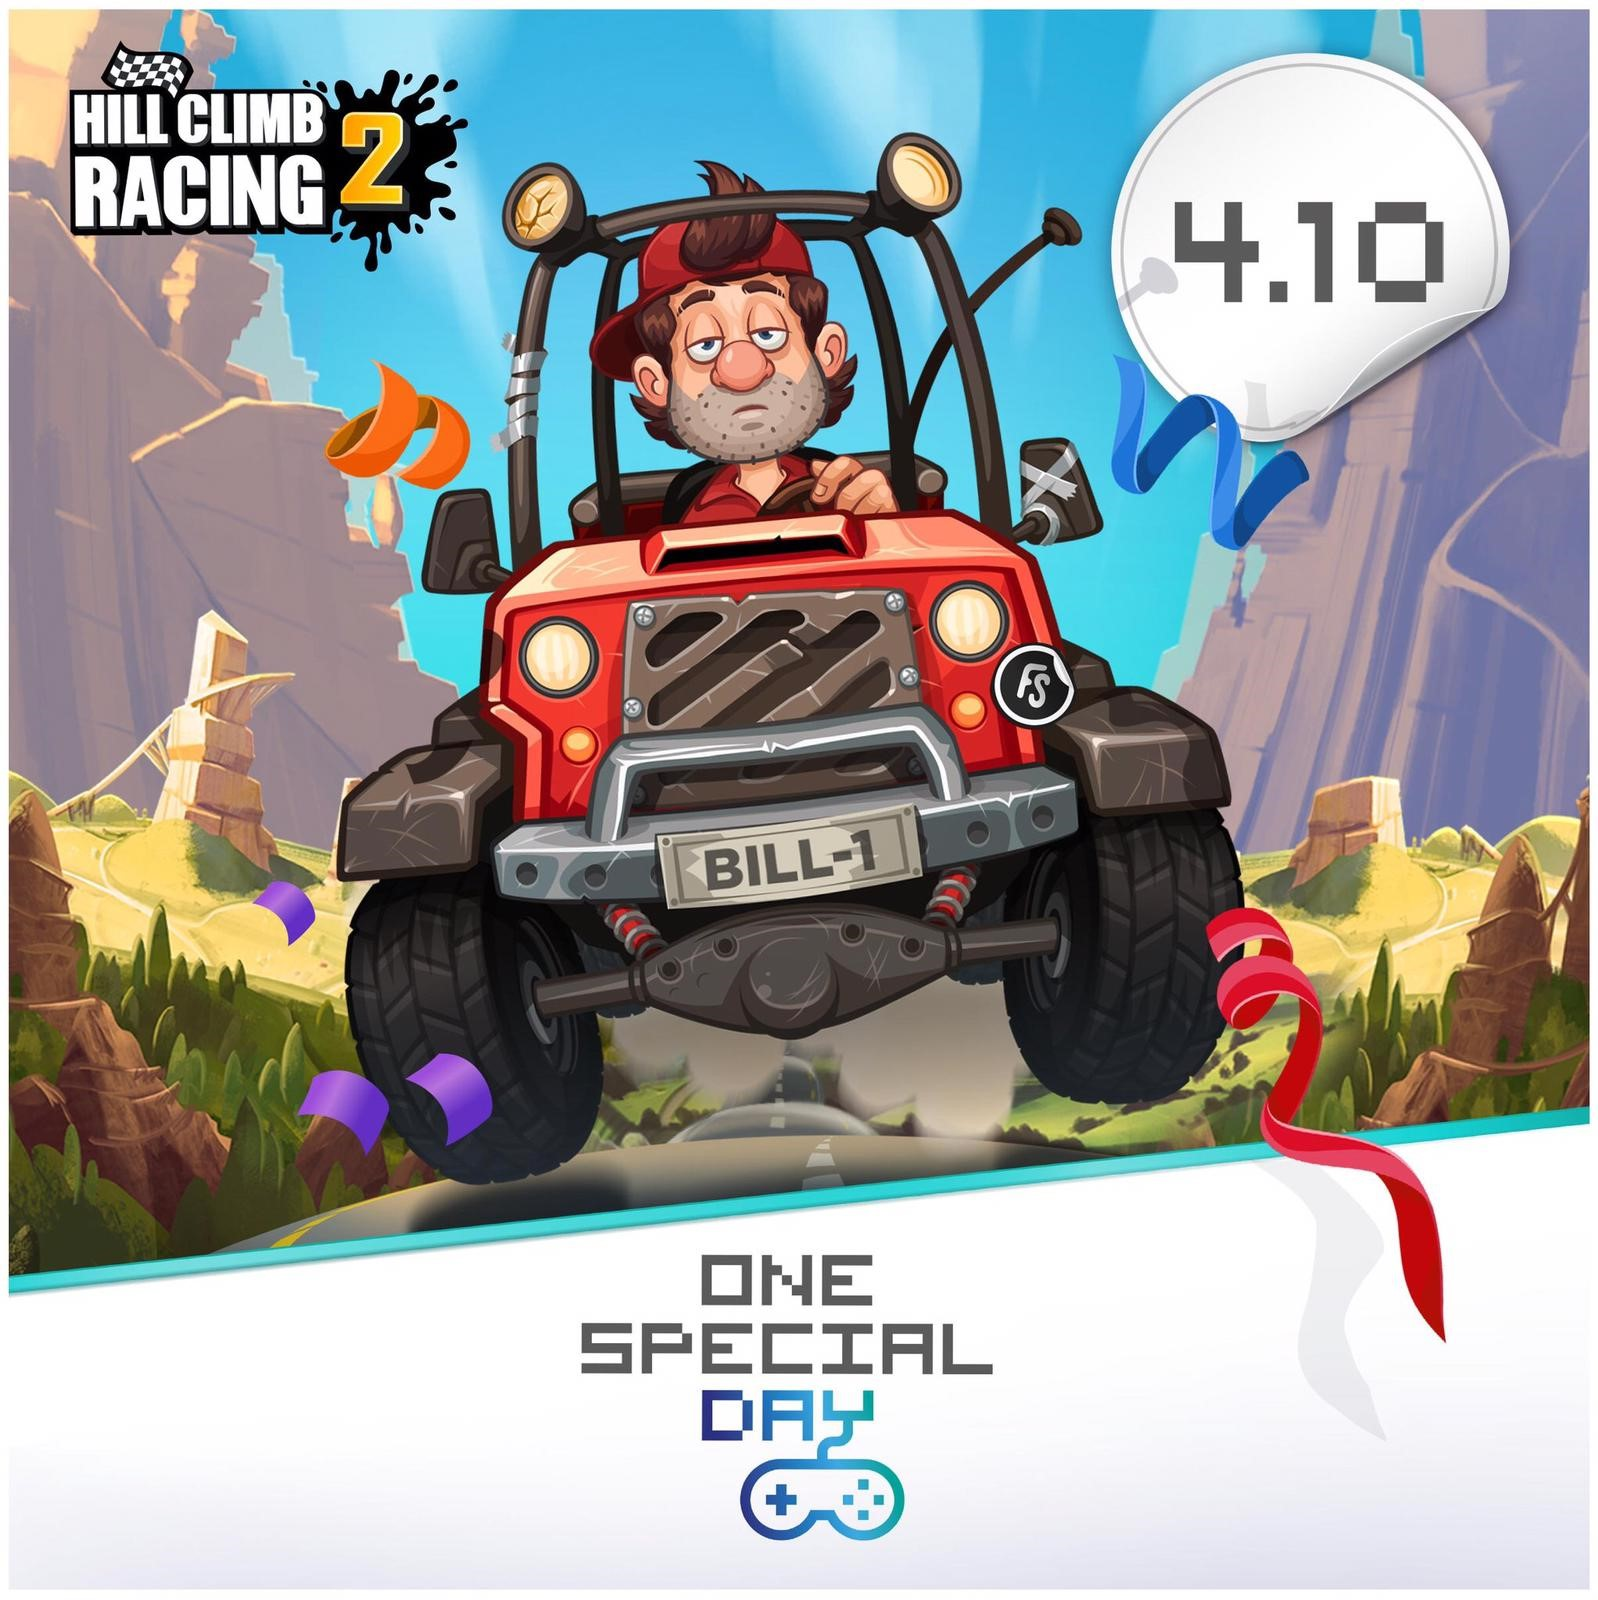 Cartoon image of Hill Climb Racer character, Bill Newton, in a funny car